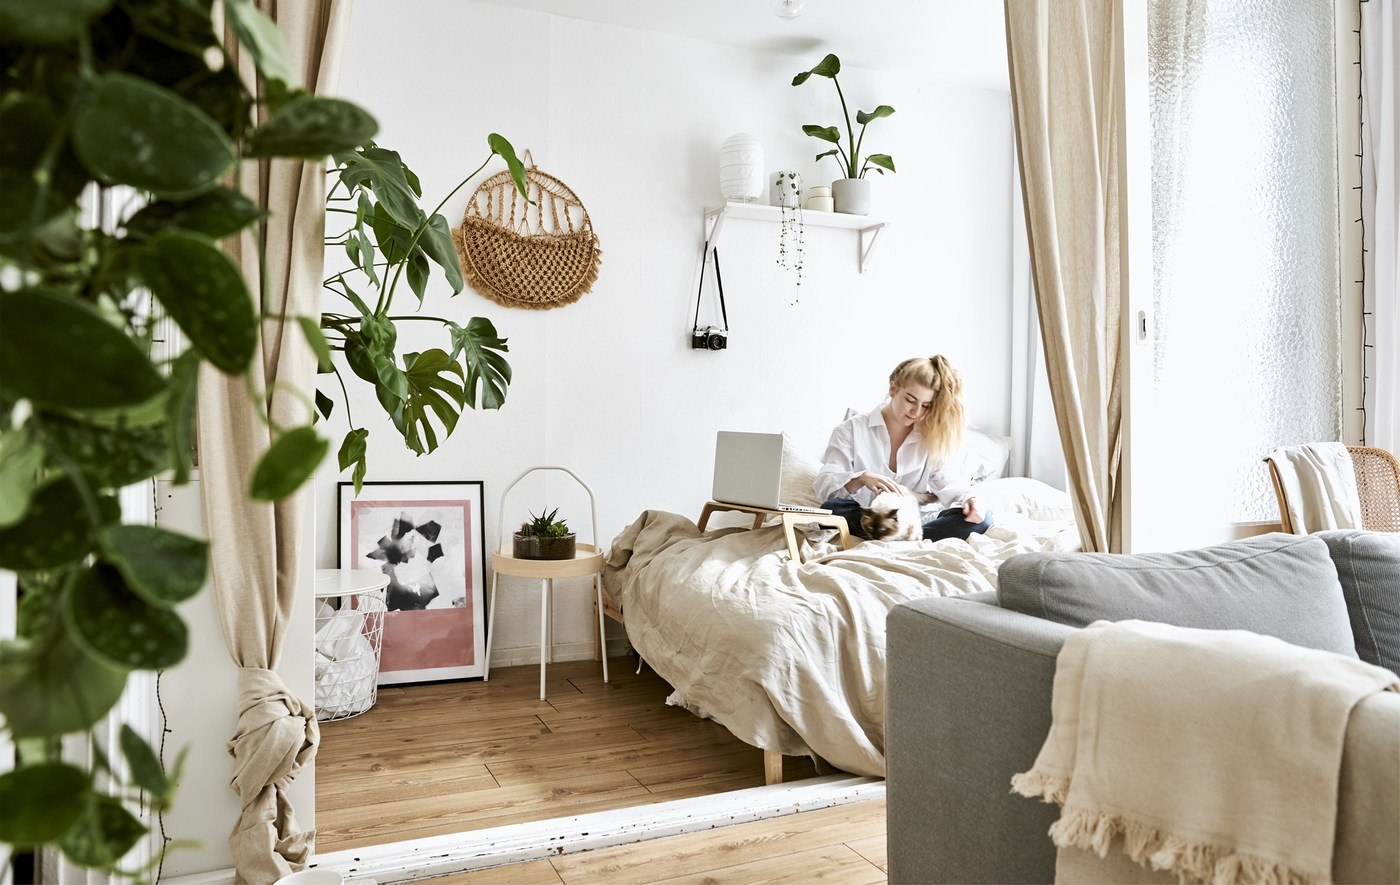 Tour of a one-room urban apartment - IKEA CA